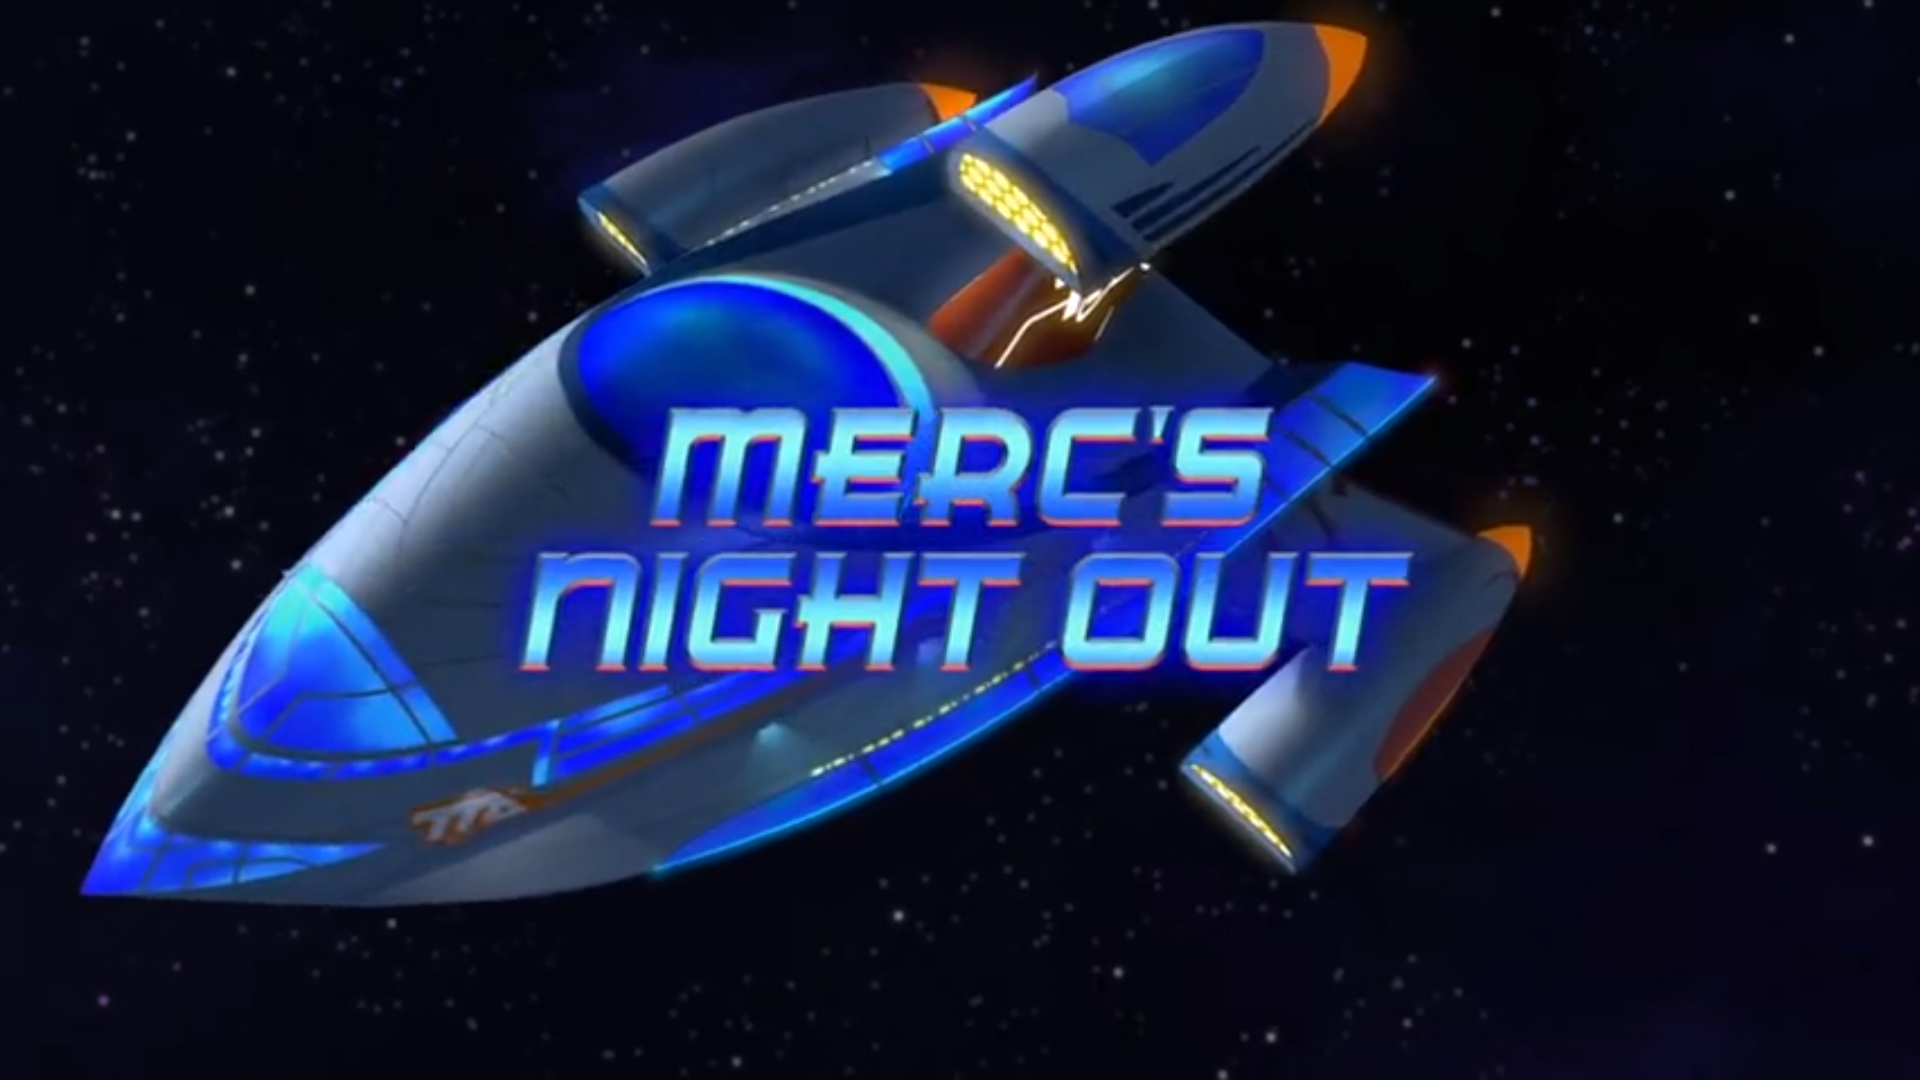 Merc's Night Out